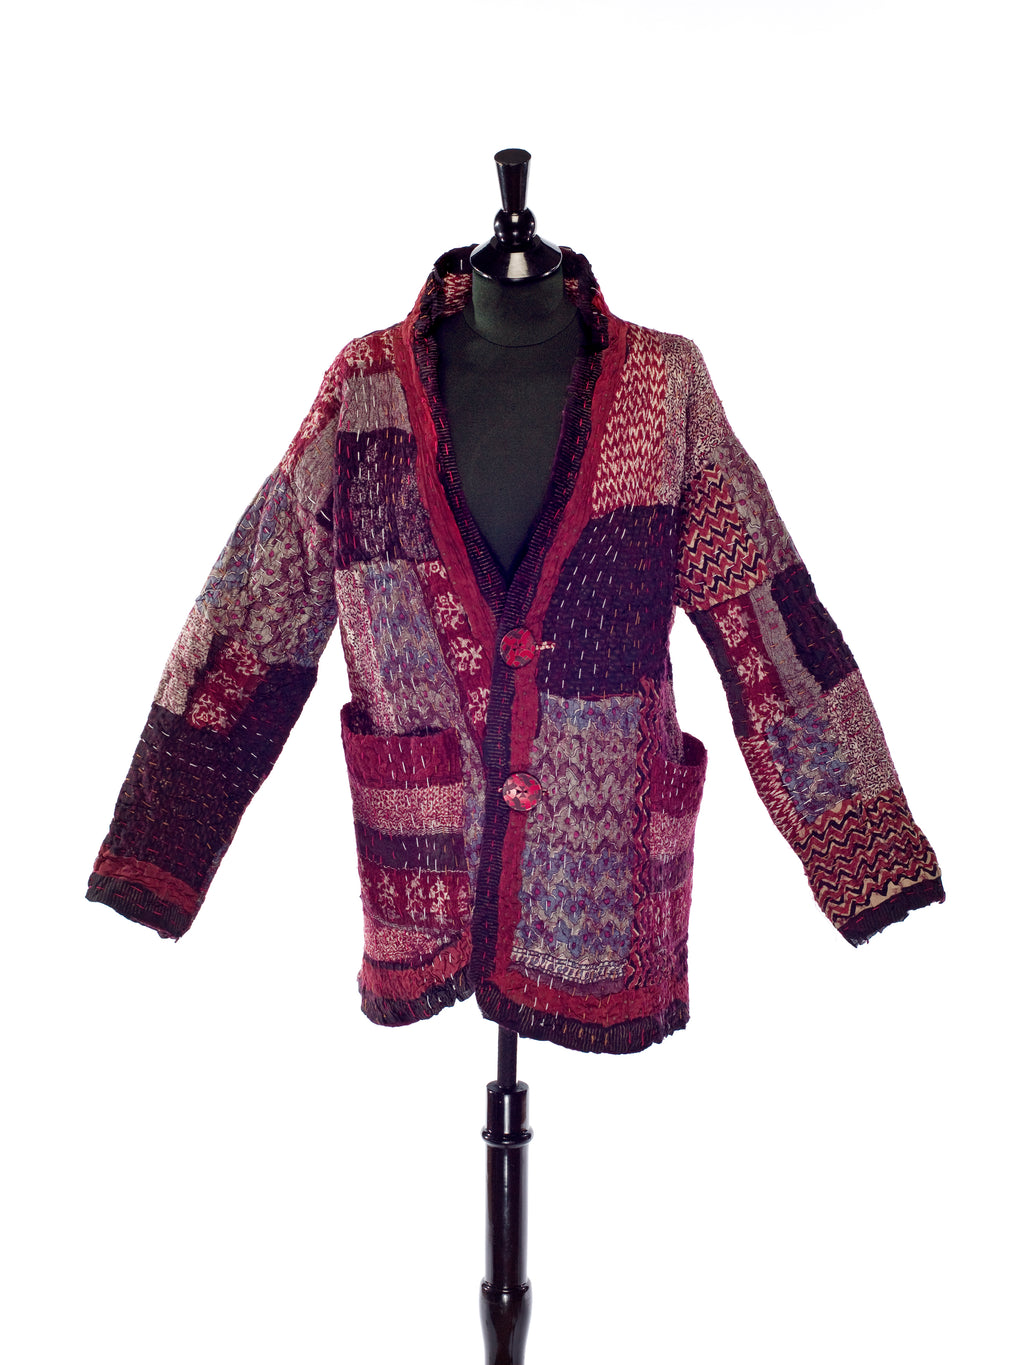 Indian Dreams Kanatha Stitched One-of-a-kind jacket